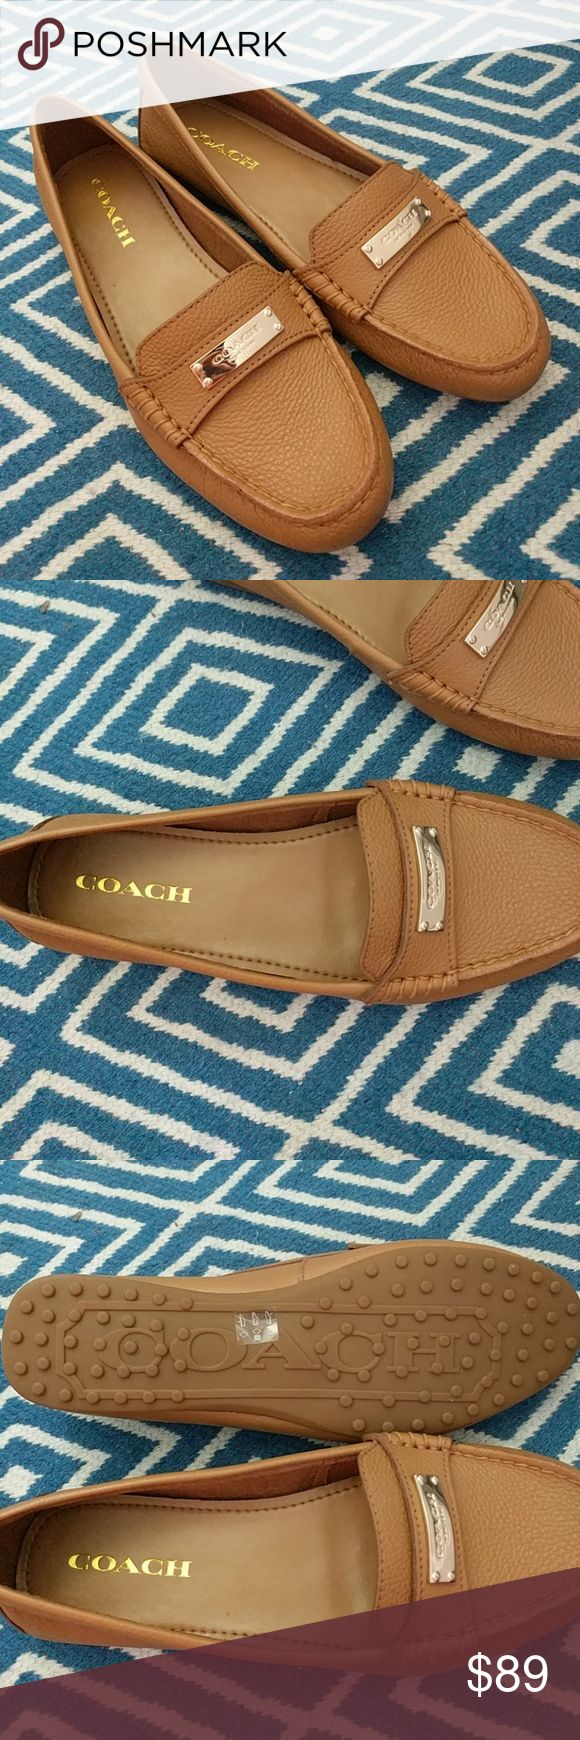 Coach Light Brown Loafers Brand New, no box.  Size 8 Coach Shoes Flats & Loafers